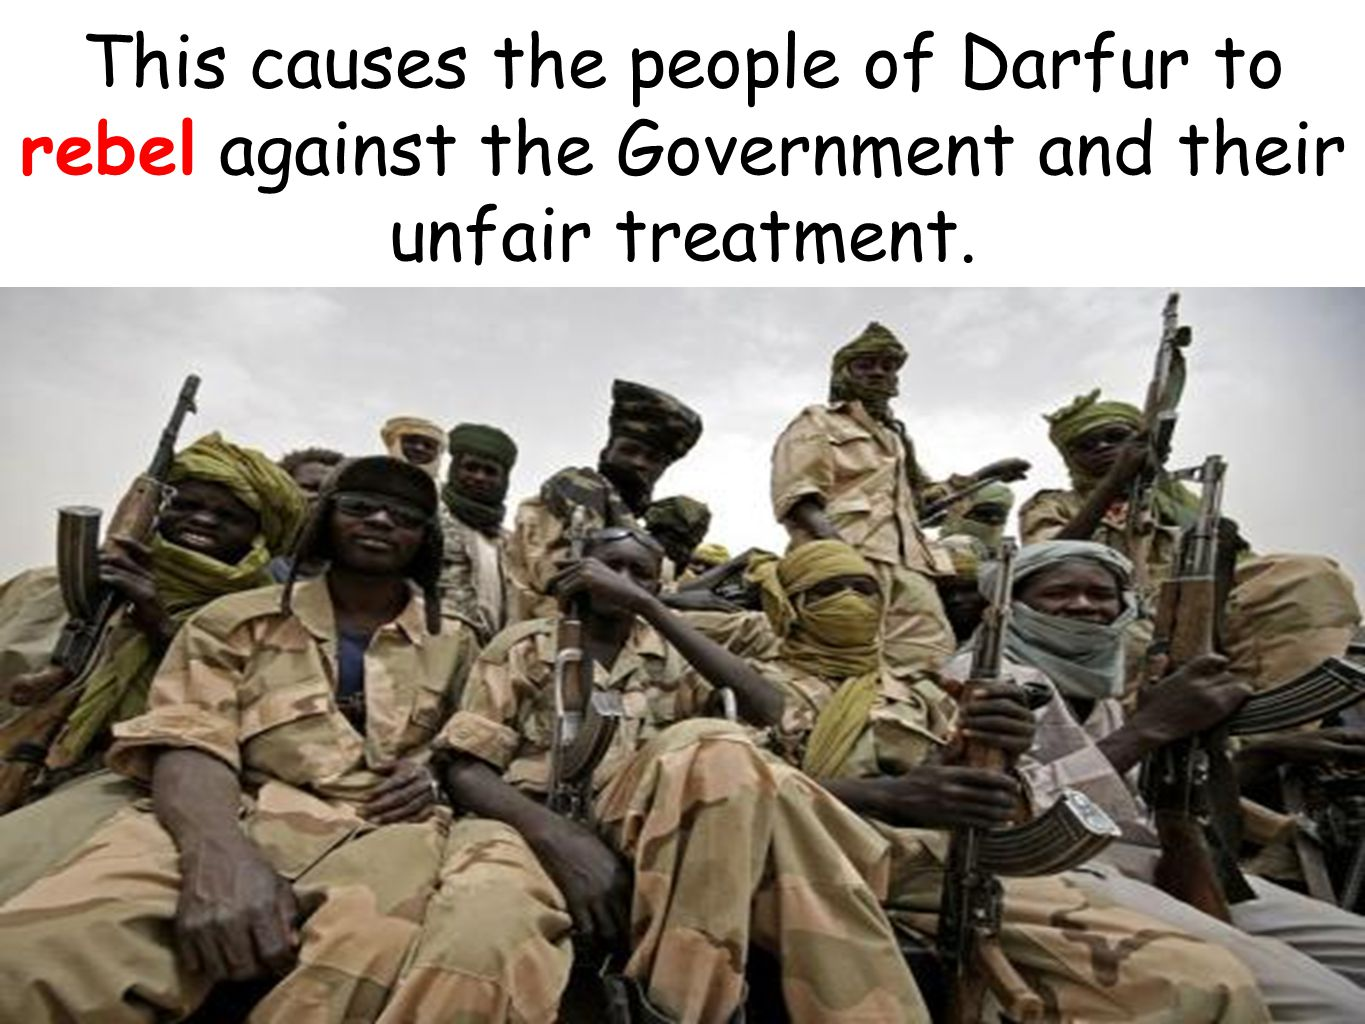 This causes the people of Darfur to rebel against the Government and their unfair treatment.